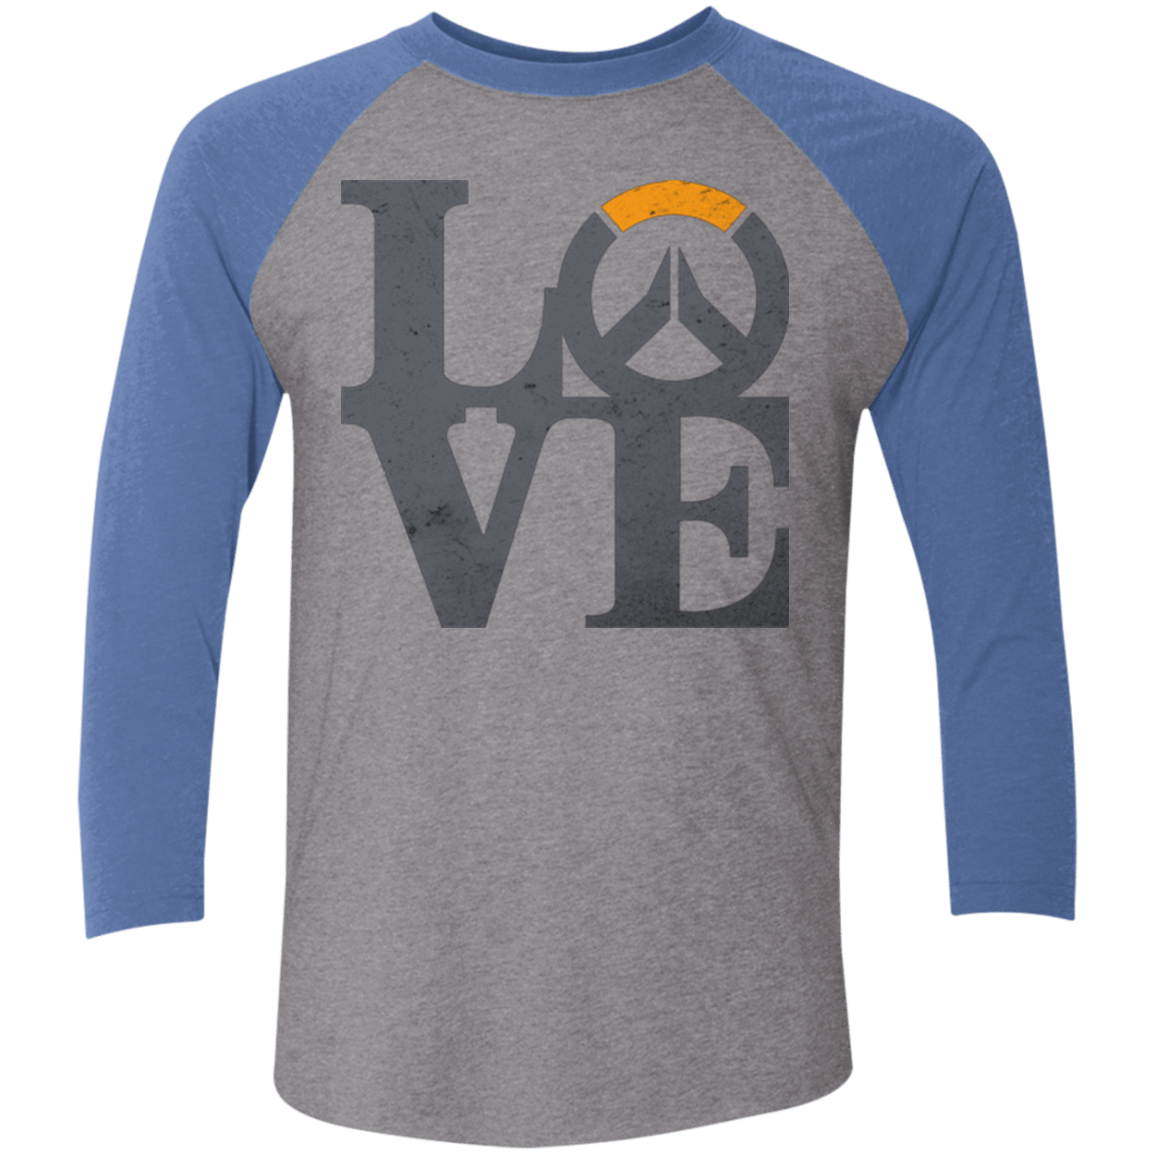 Loverwatch Men's Triblend 3/4 Sleeve